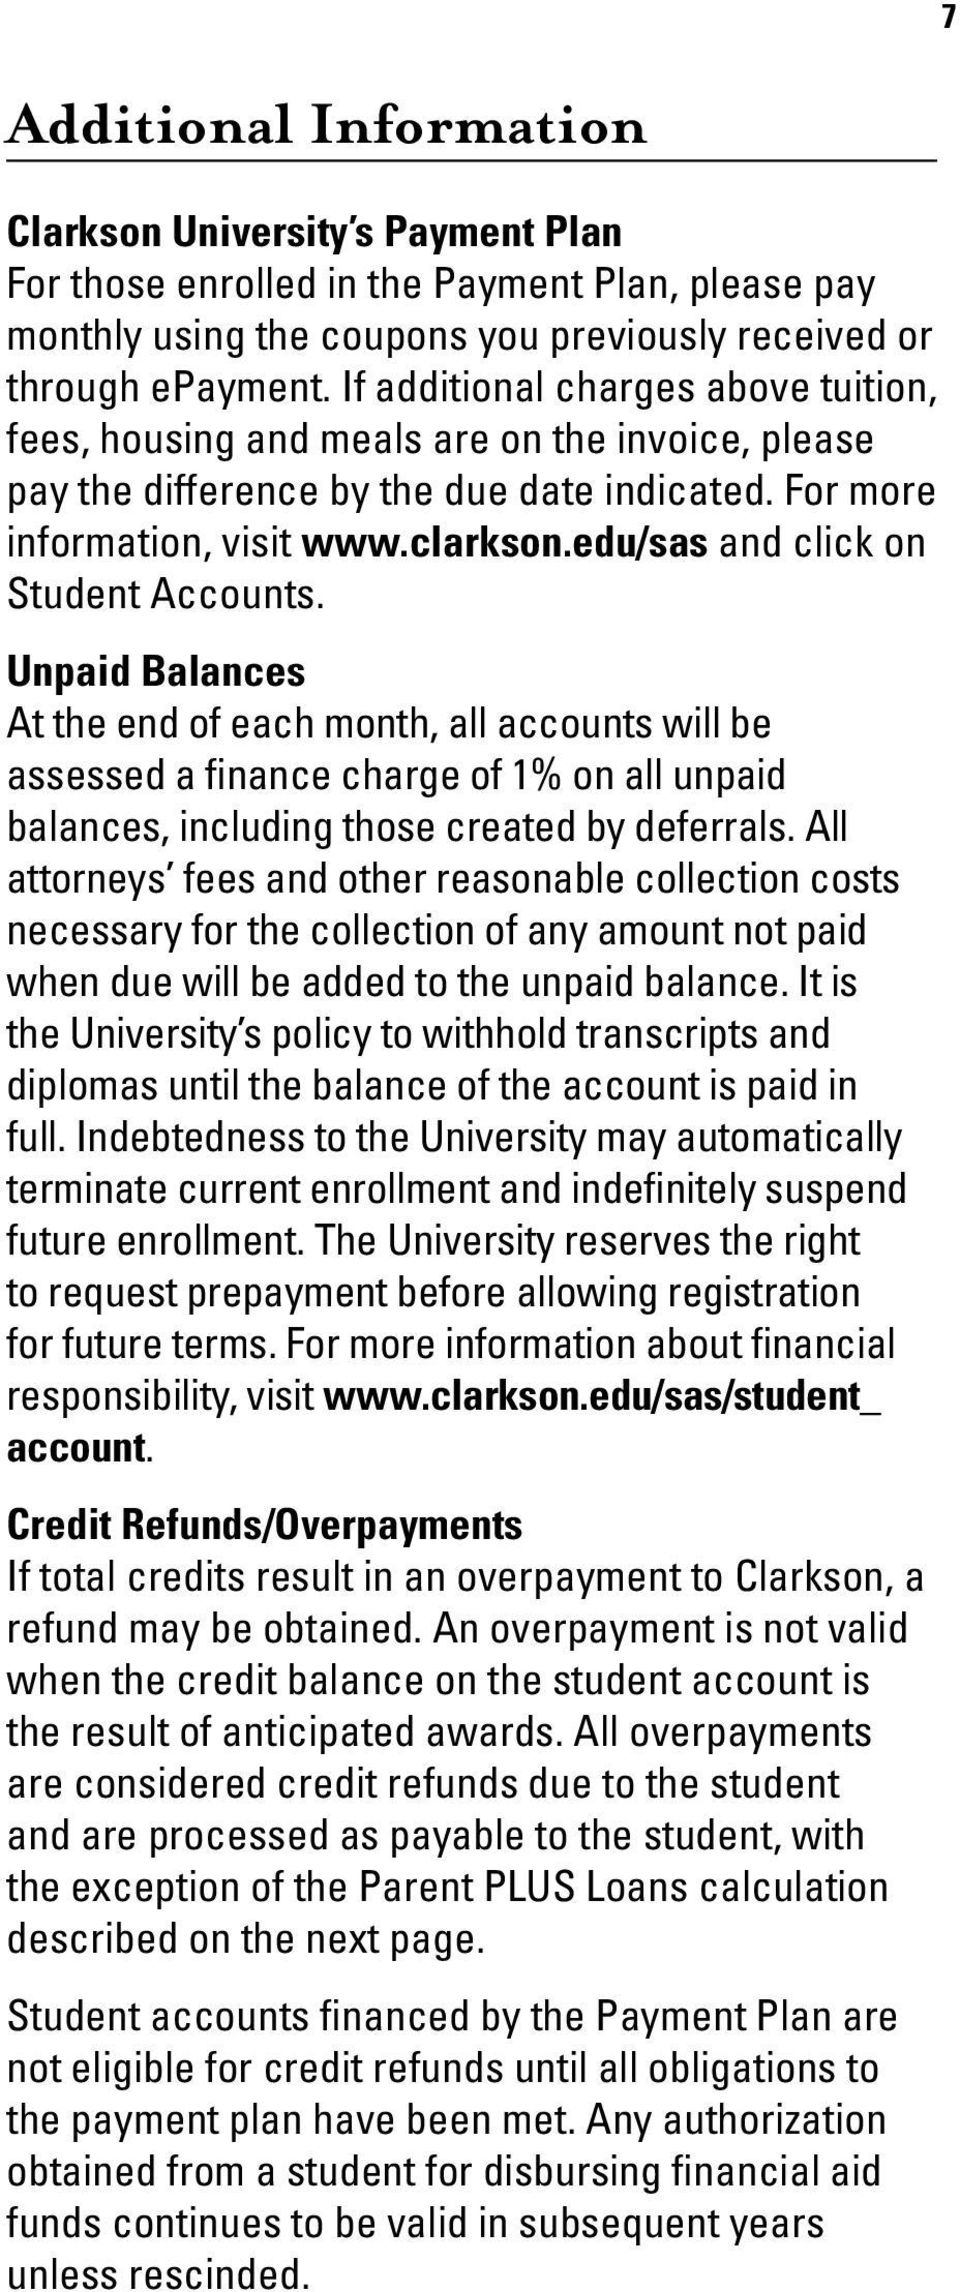 edu/sas and click on Student Accounts. Unpaid Balances At the end of each month, all accounts will be assessed a finance charge of 1% on all unpaid balances, including those created by deferrals.